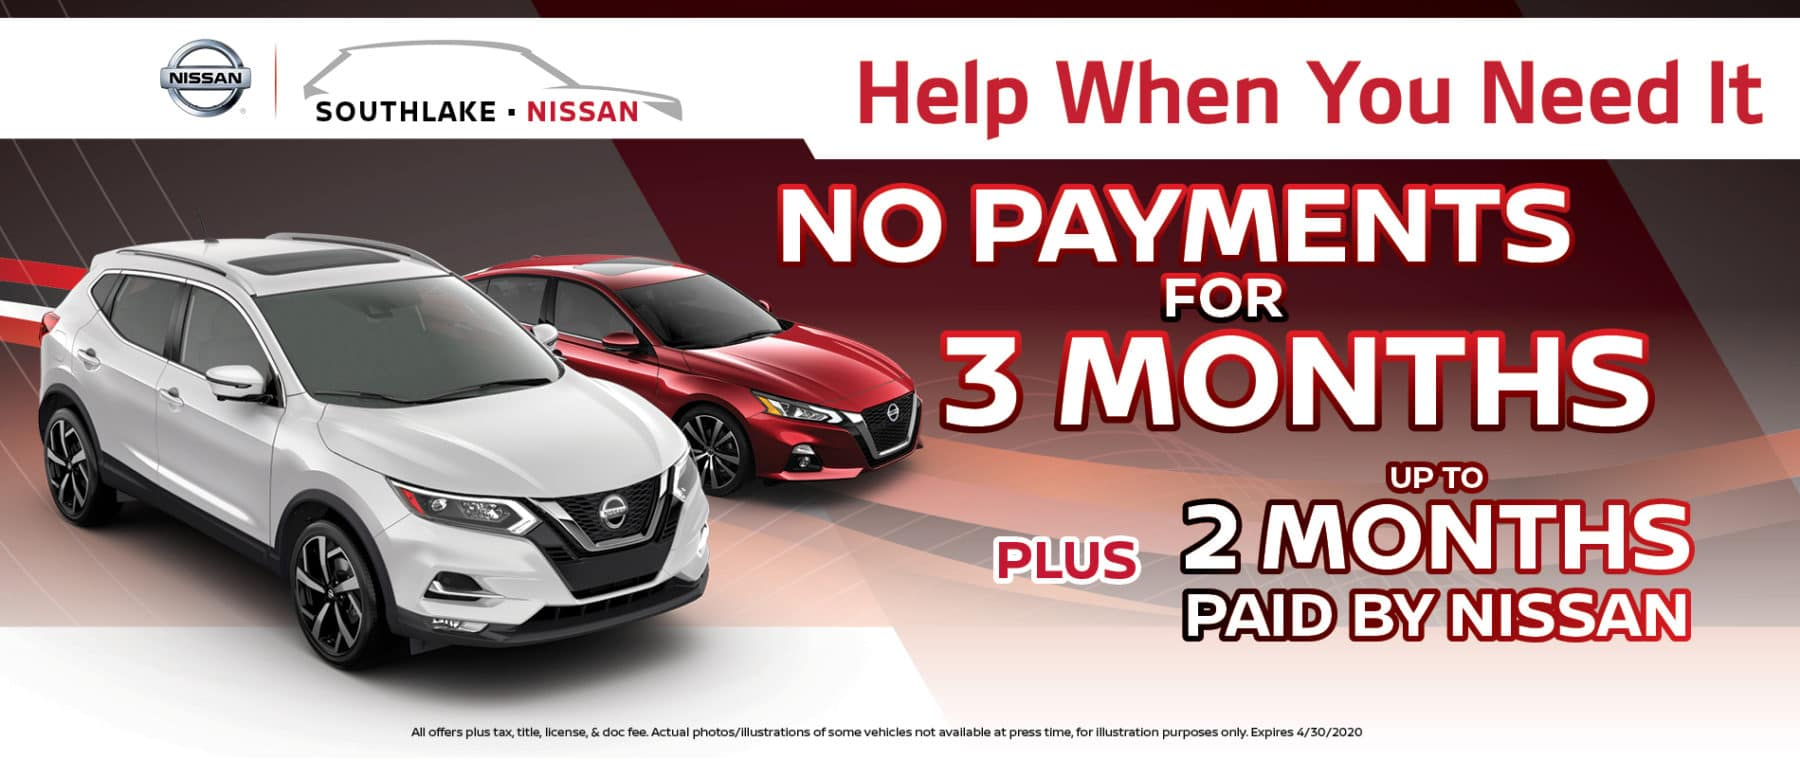 No Payments for 3 Months